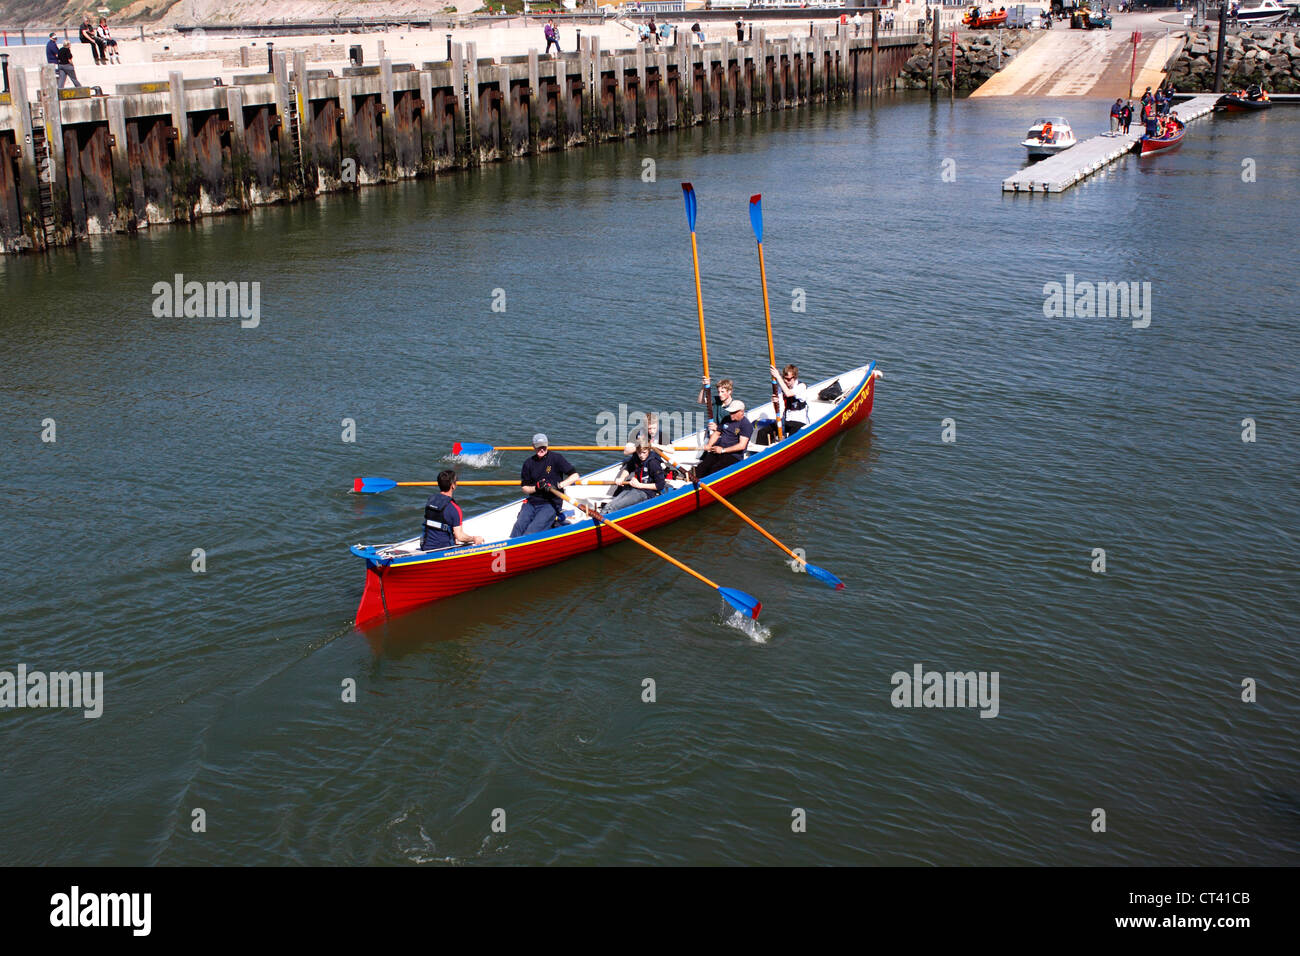 GIG RACING. WEST BAY JURASSIC COAST. DORSET. UK. - Stock Image